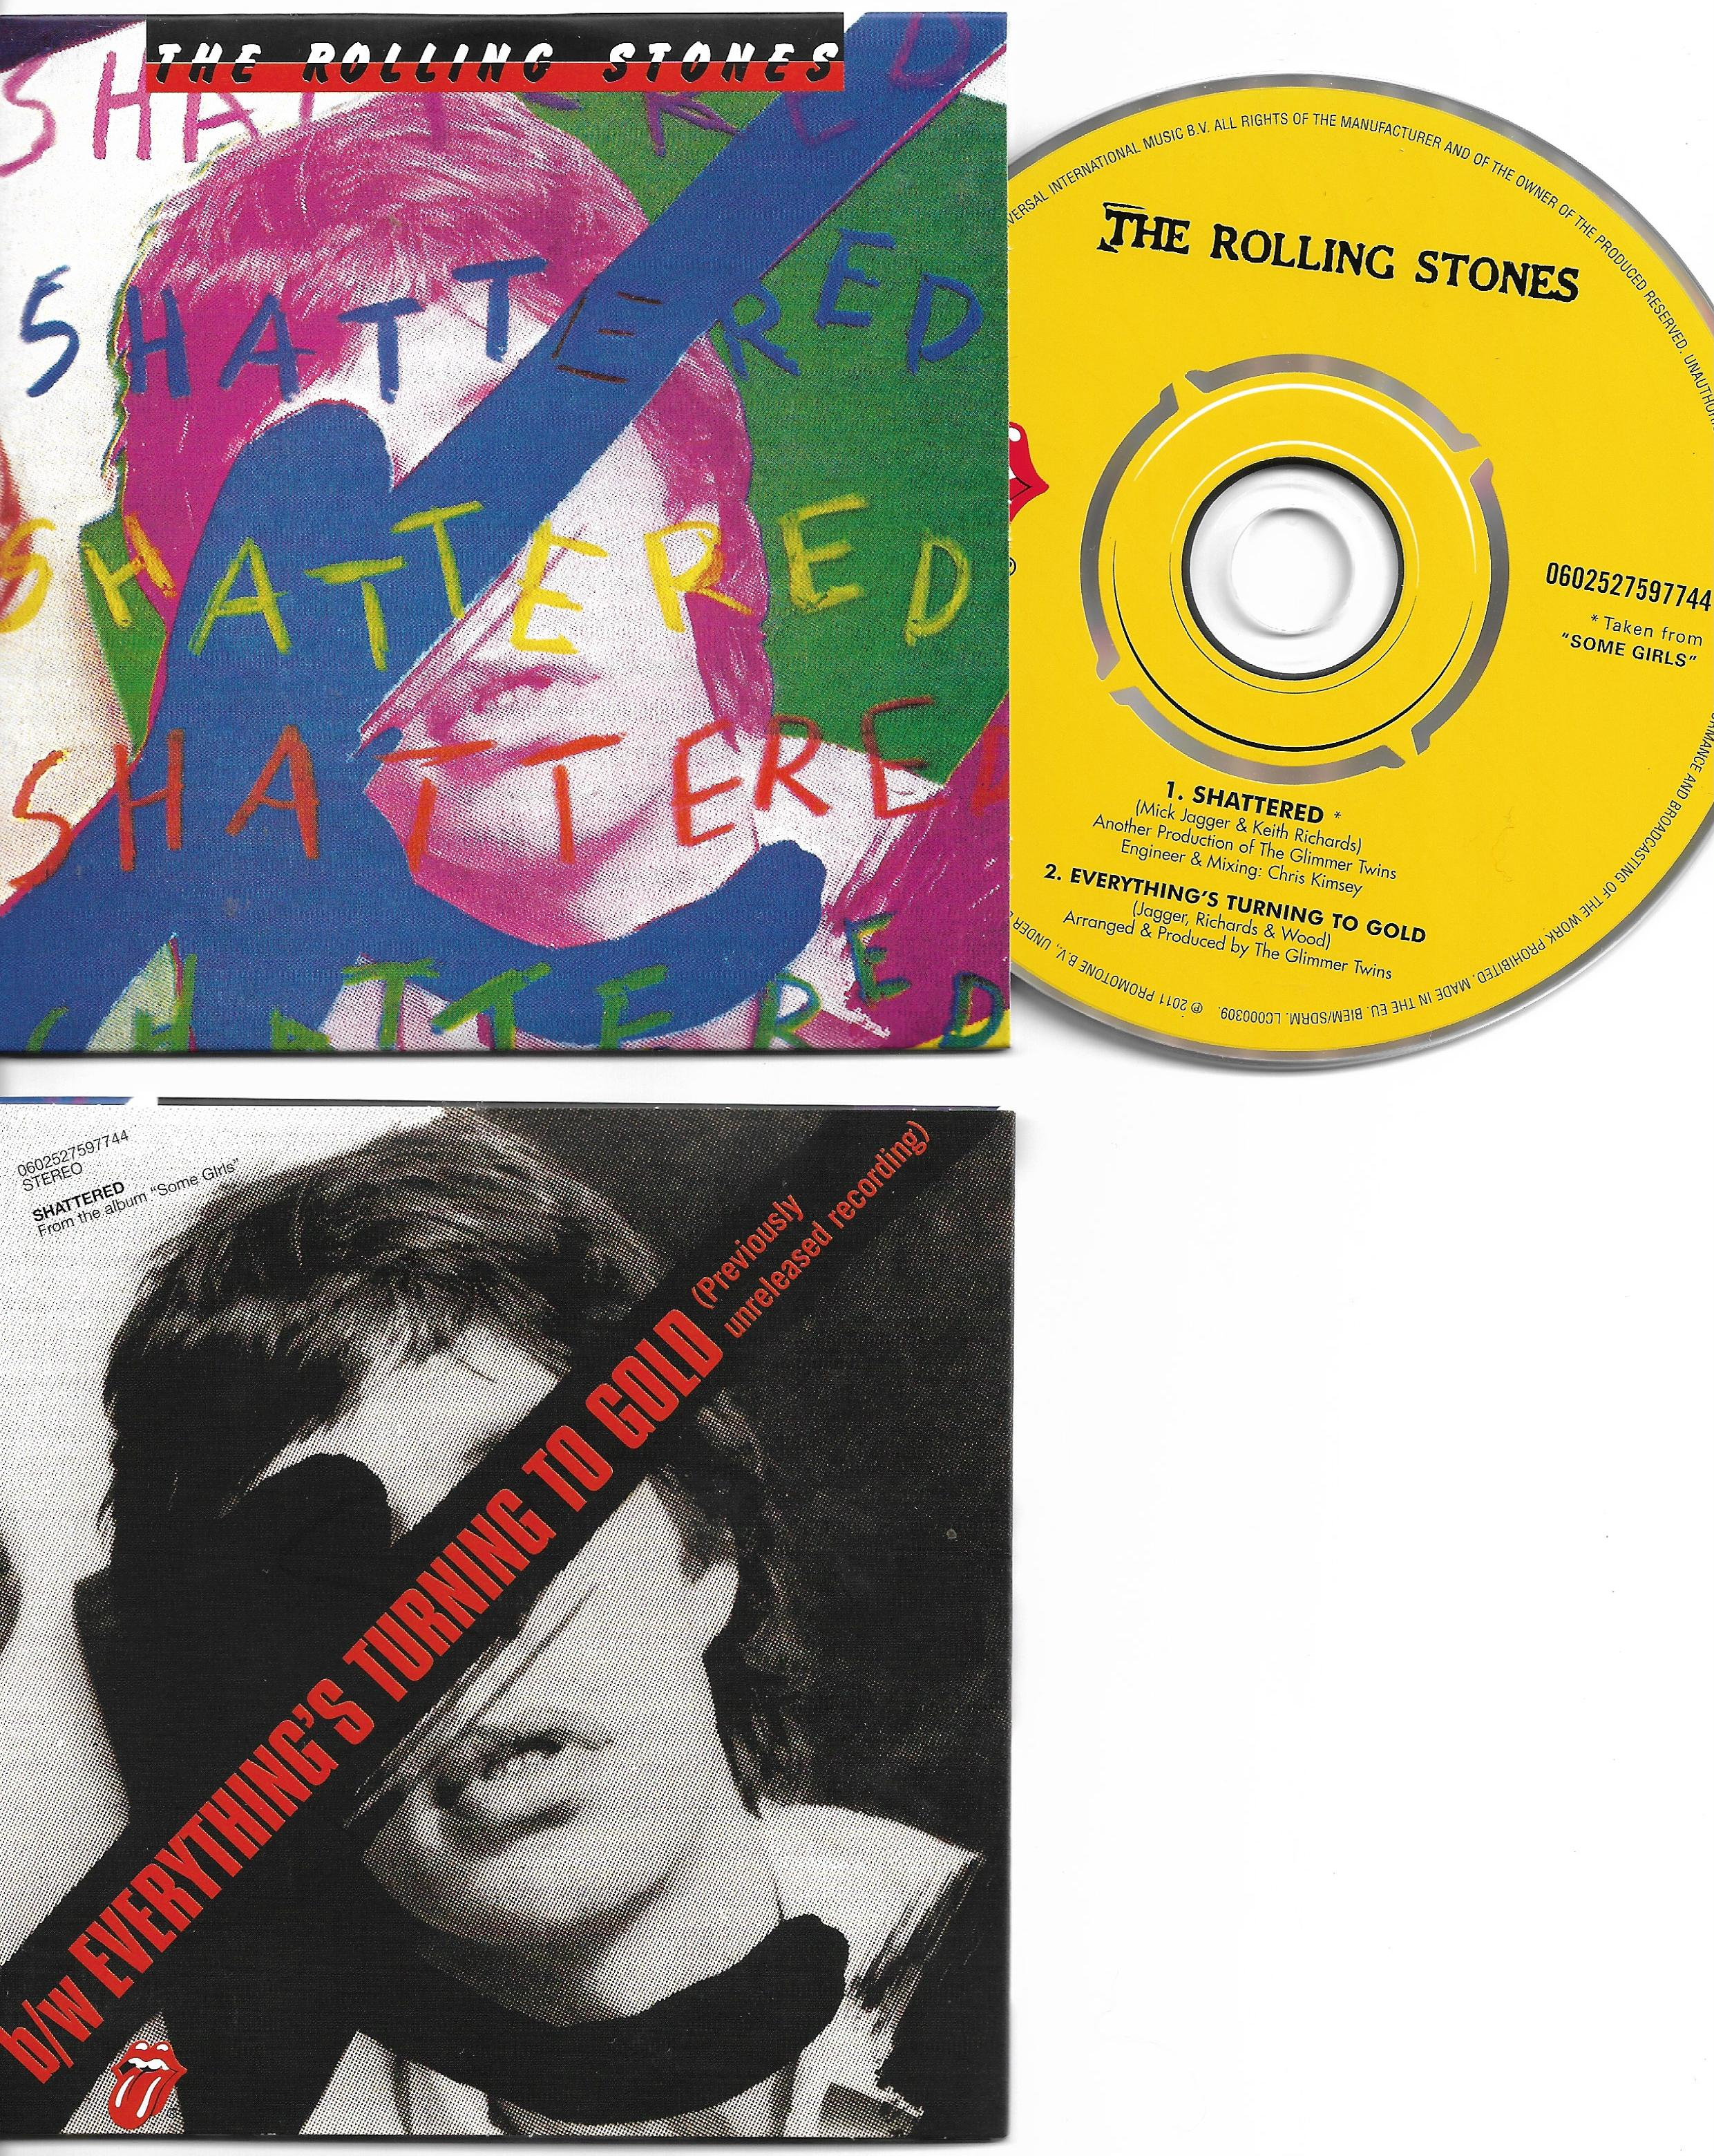 THE ROLLING STONES - Shatered 2-track CARD SLEEVE - CD single